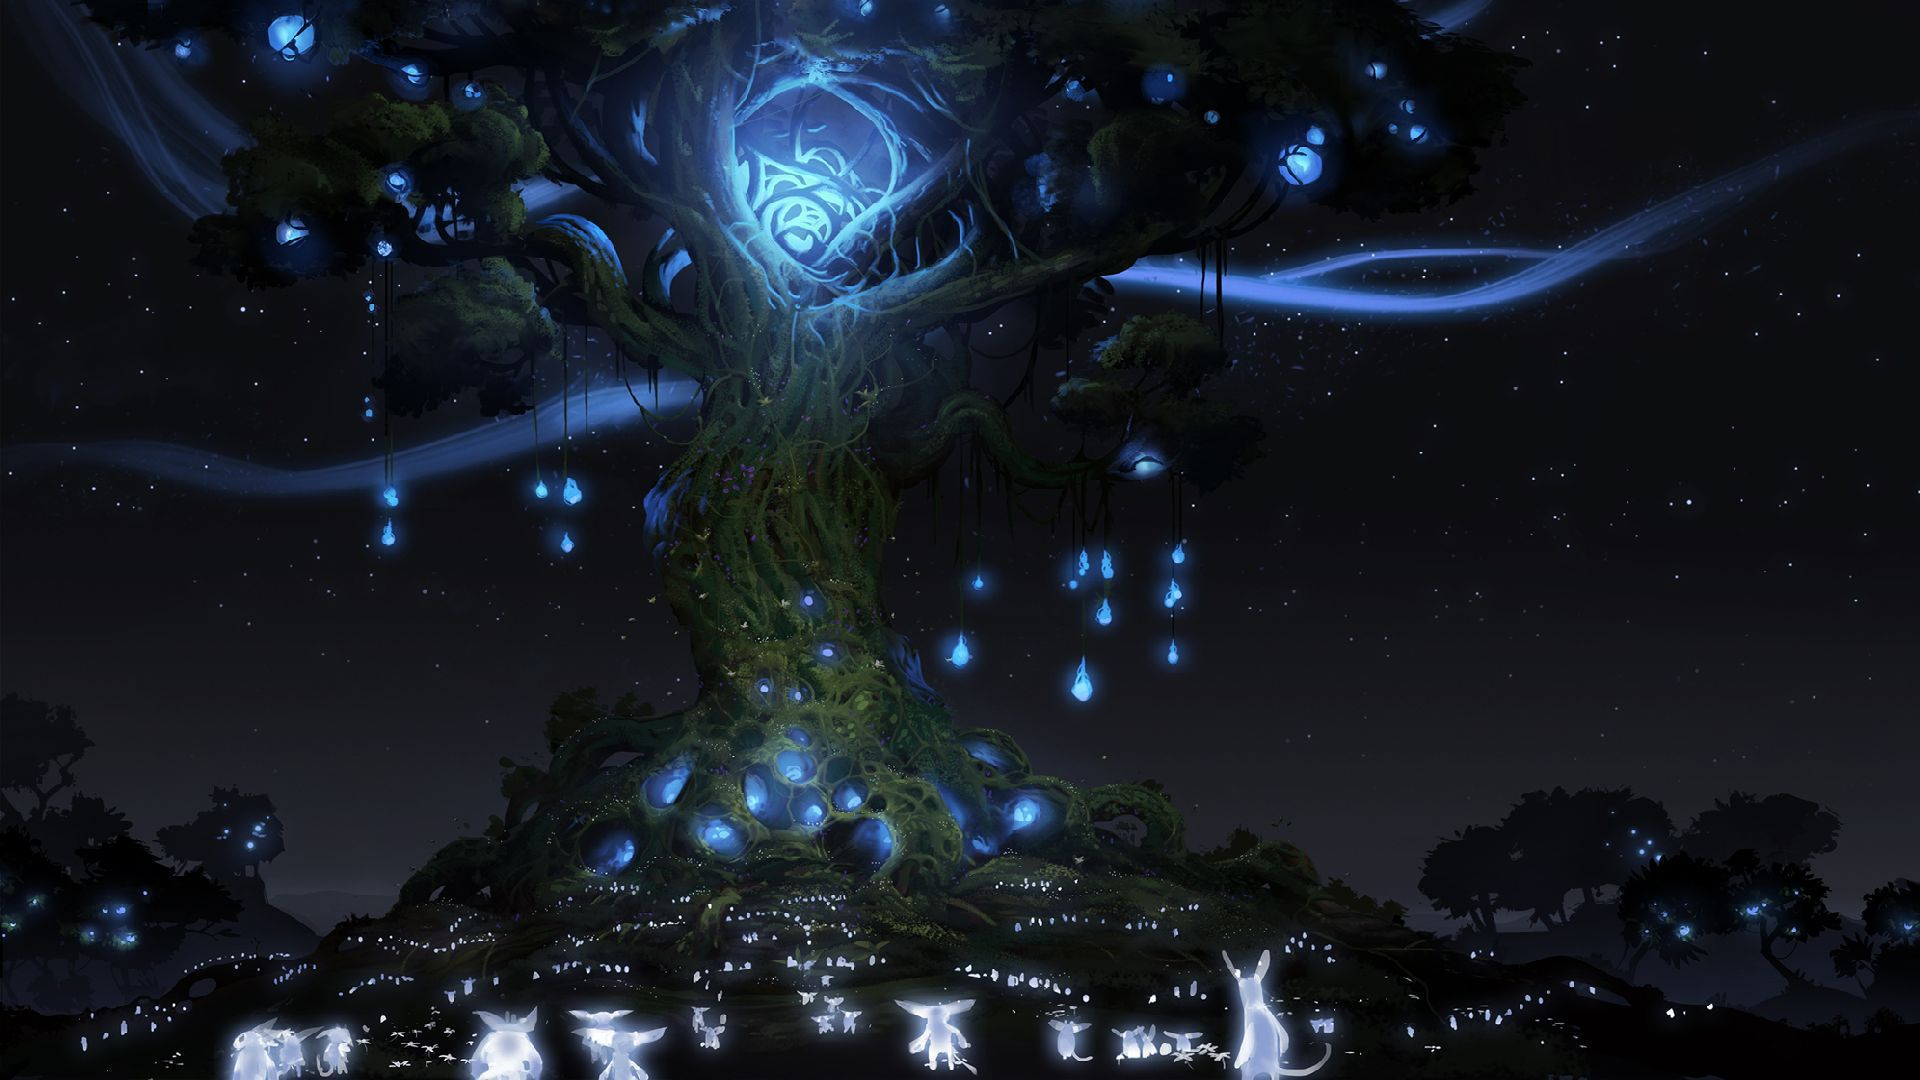 Ori And The Will Of The Wisps Wallpaper Hd Wallpapers Download